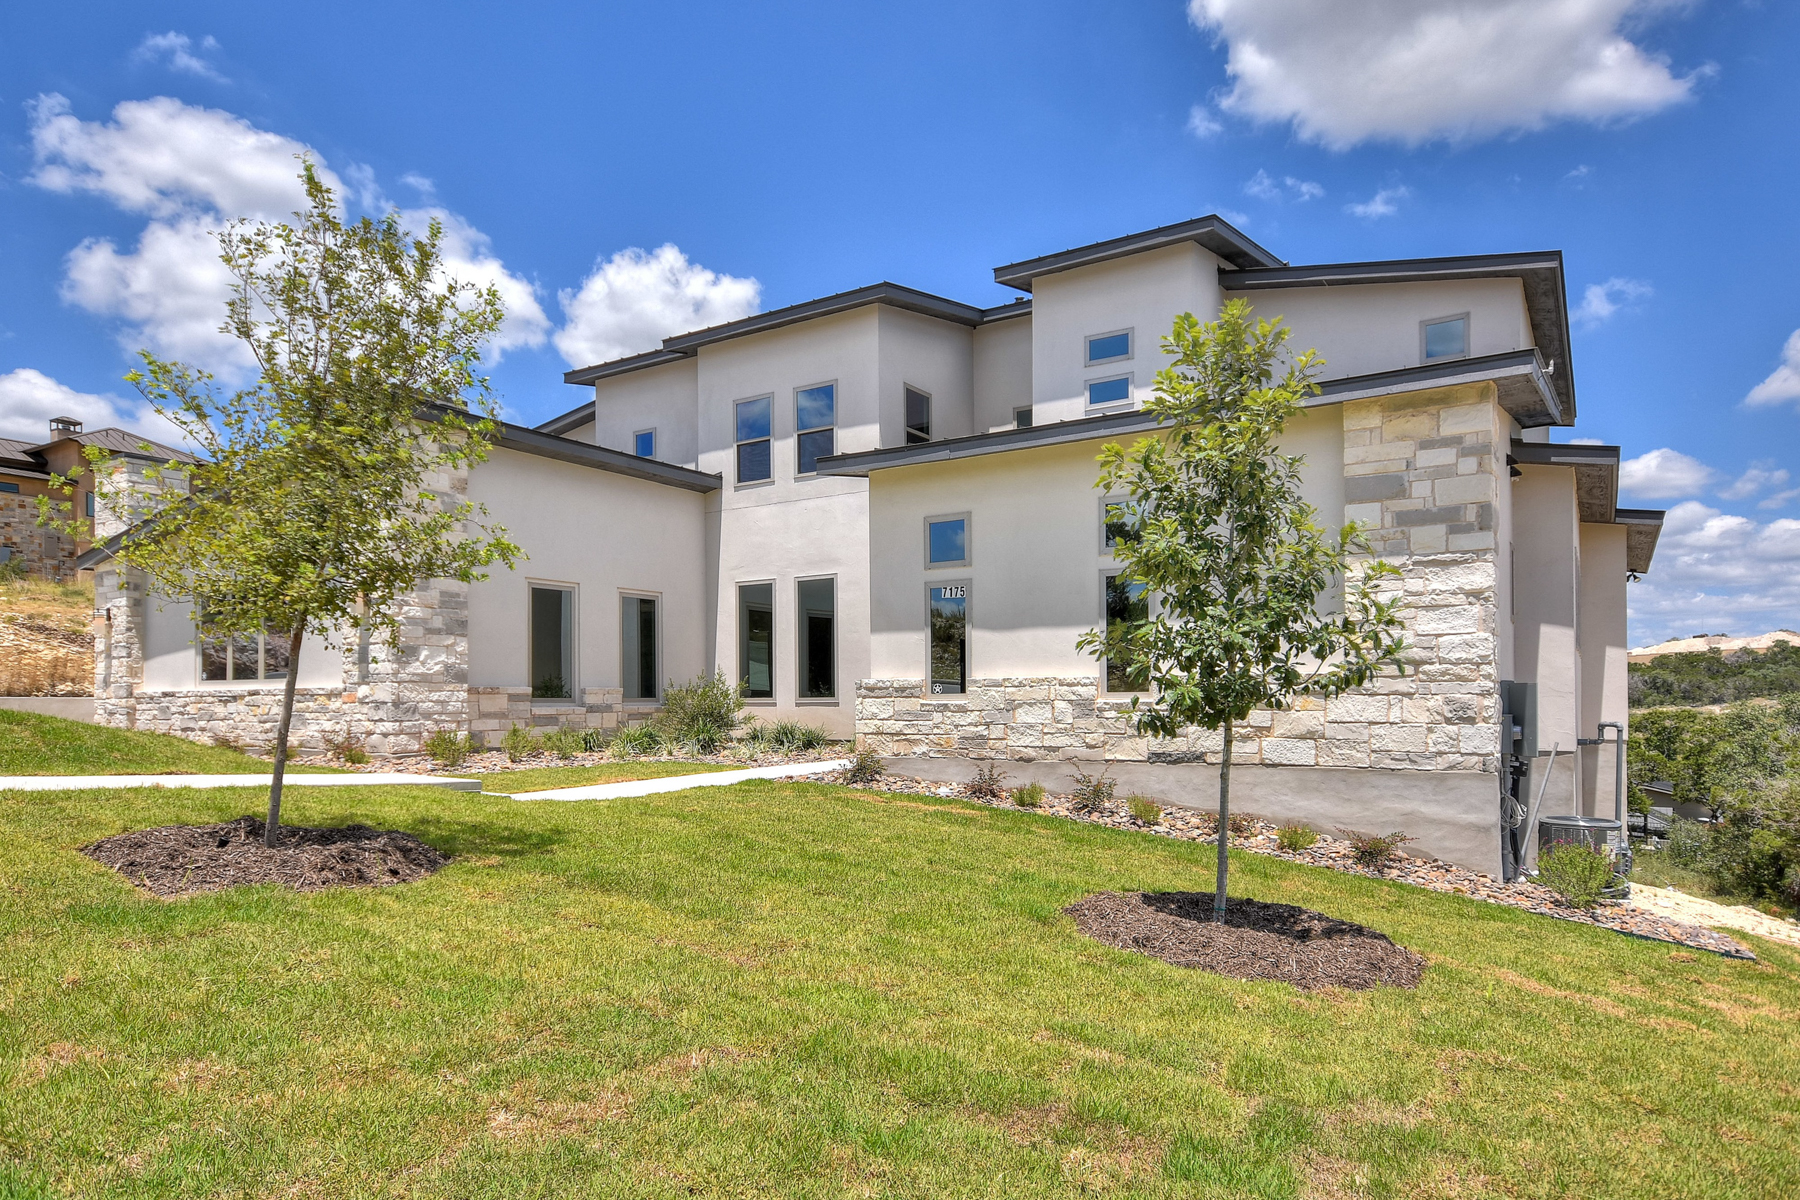 Additional photo for property listing at Magnificent Home in Cresta Bella 7175 Bella Garden San Antonio, Texas 78256 United States